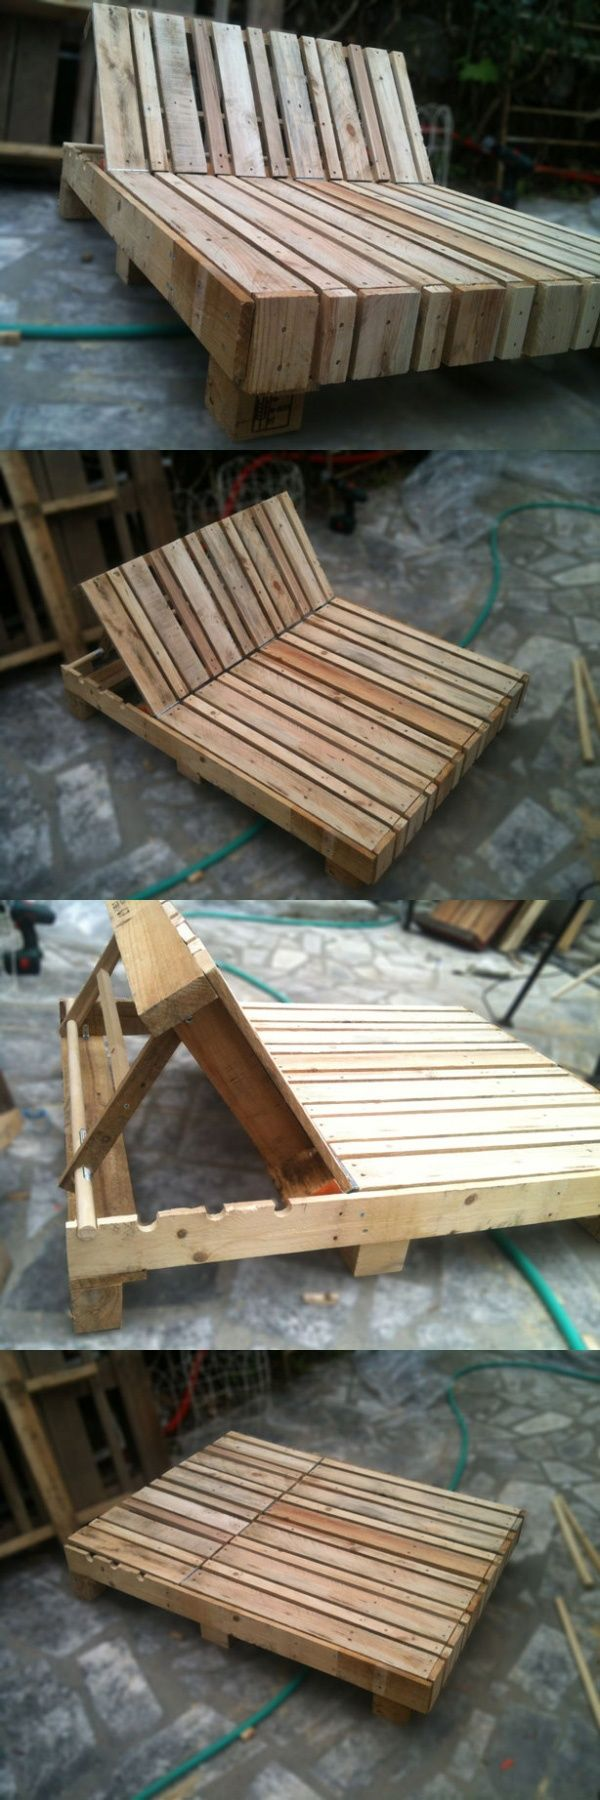 pallet deck chair project